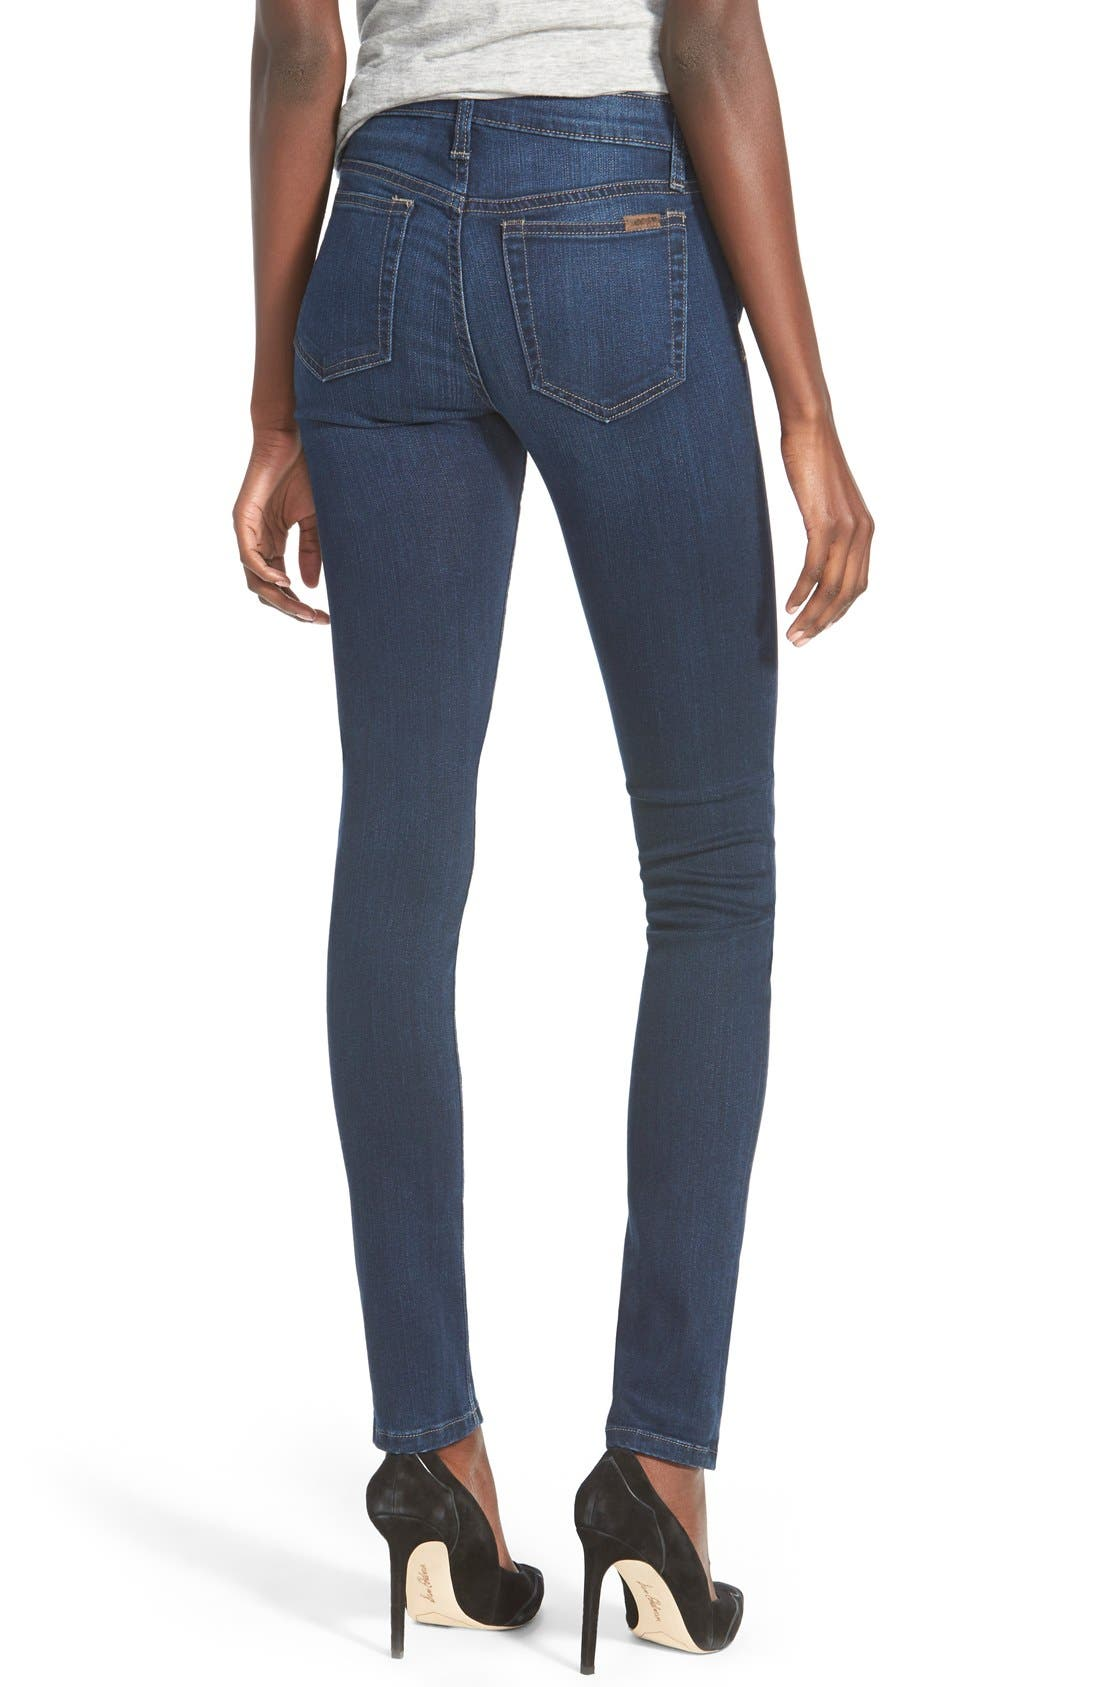 Icon Skinny Jeans,                             Alternate thumbnail 3, color,                             410